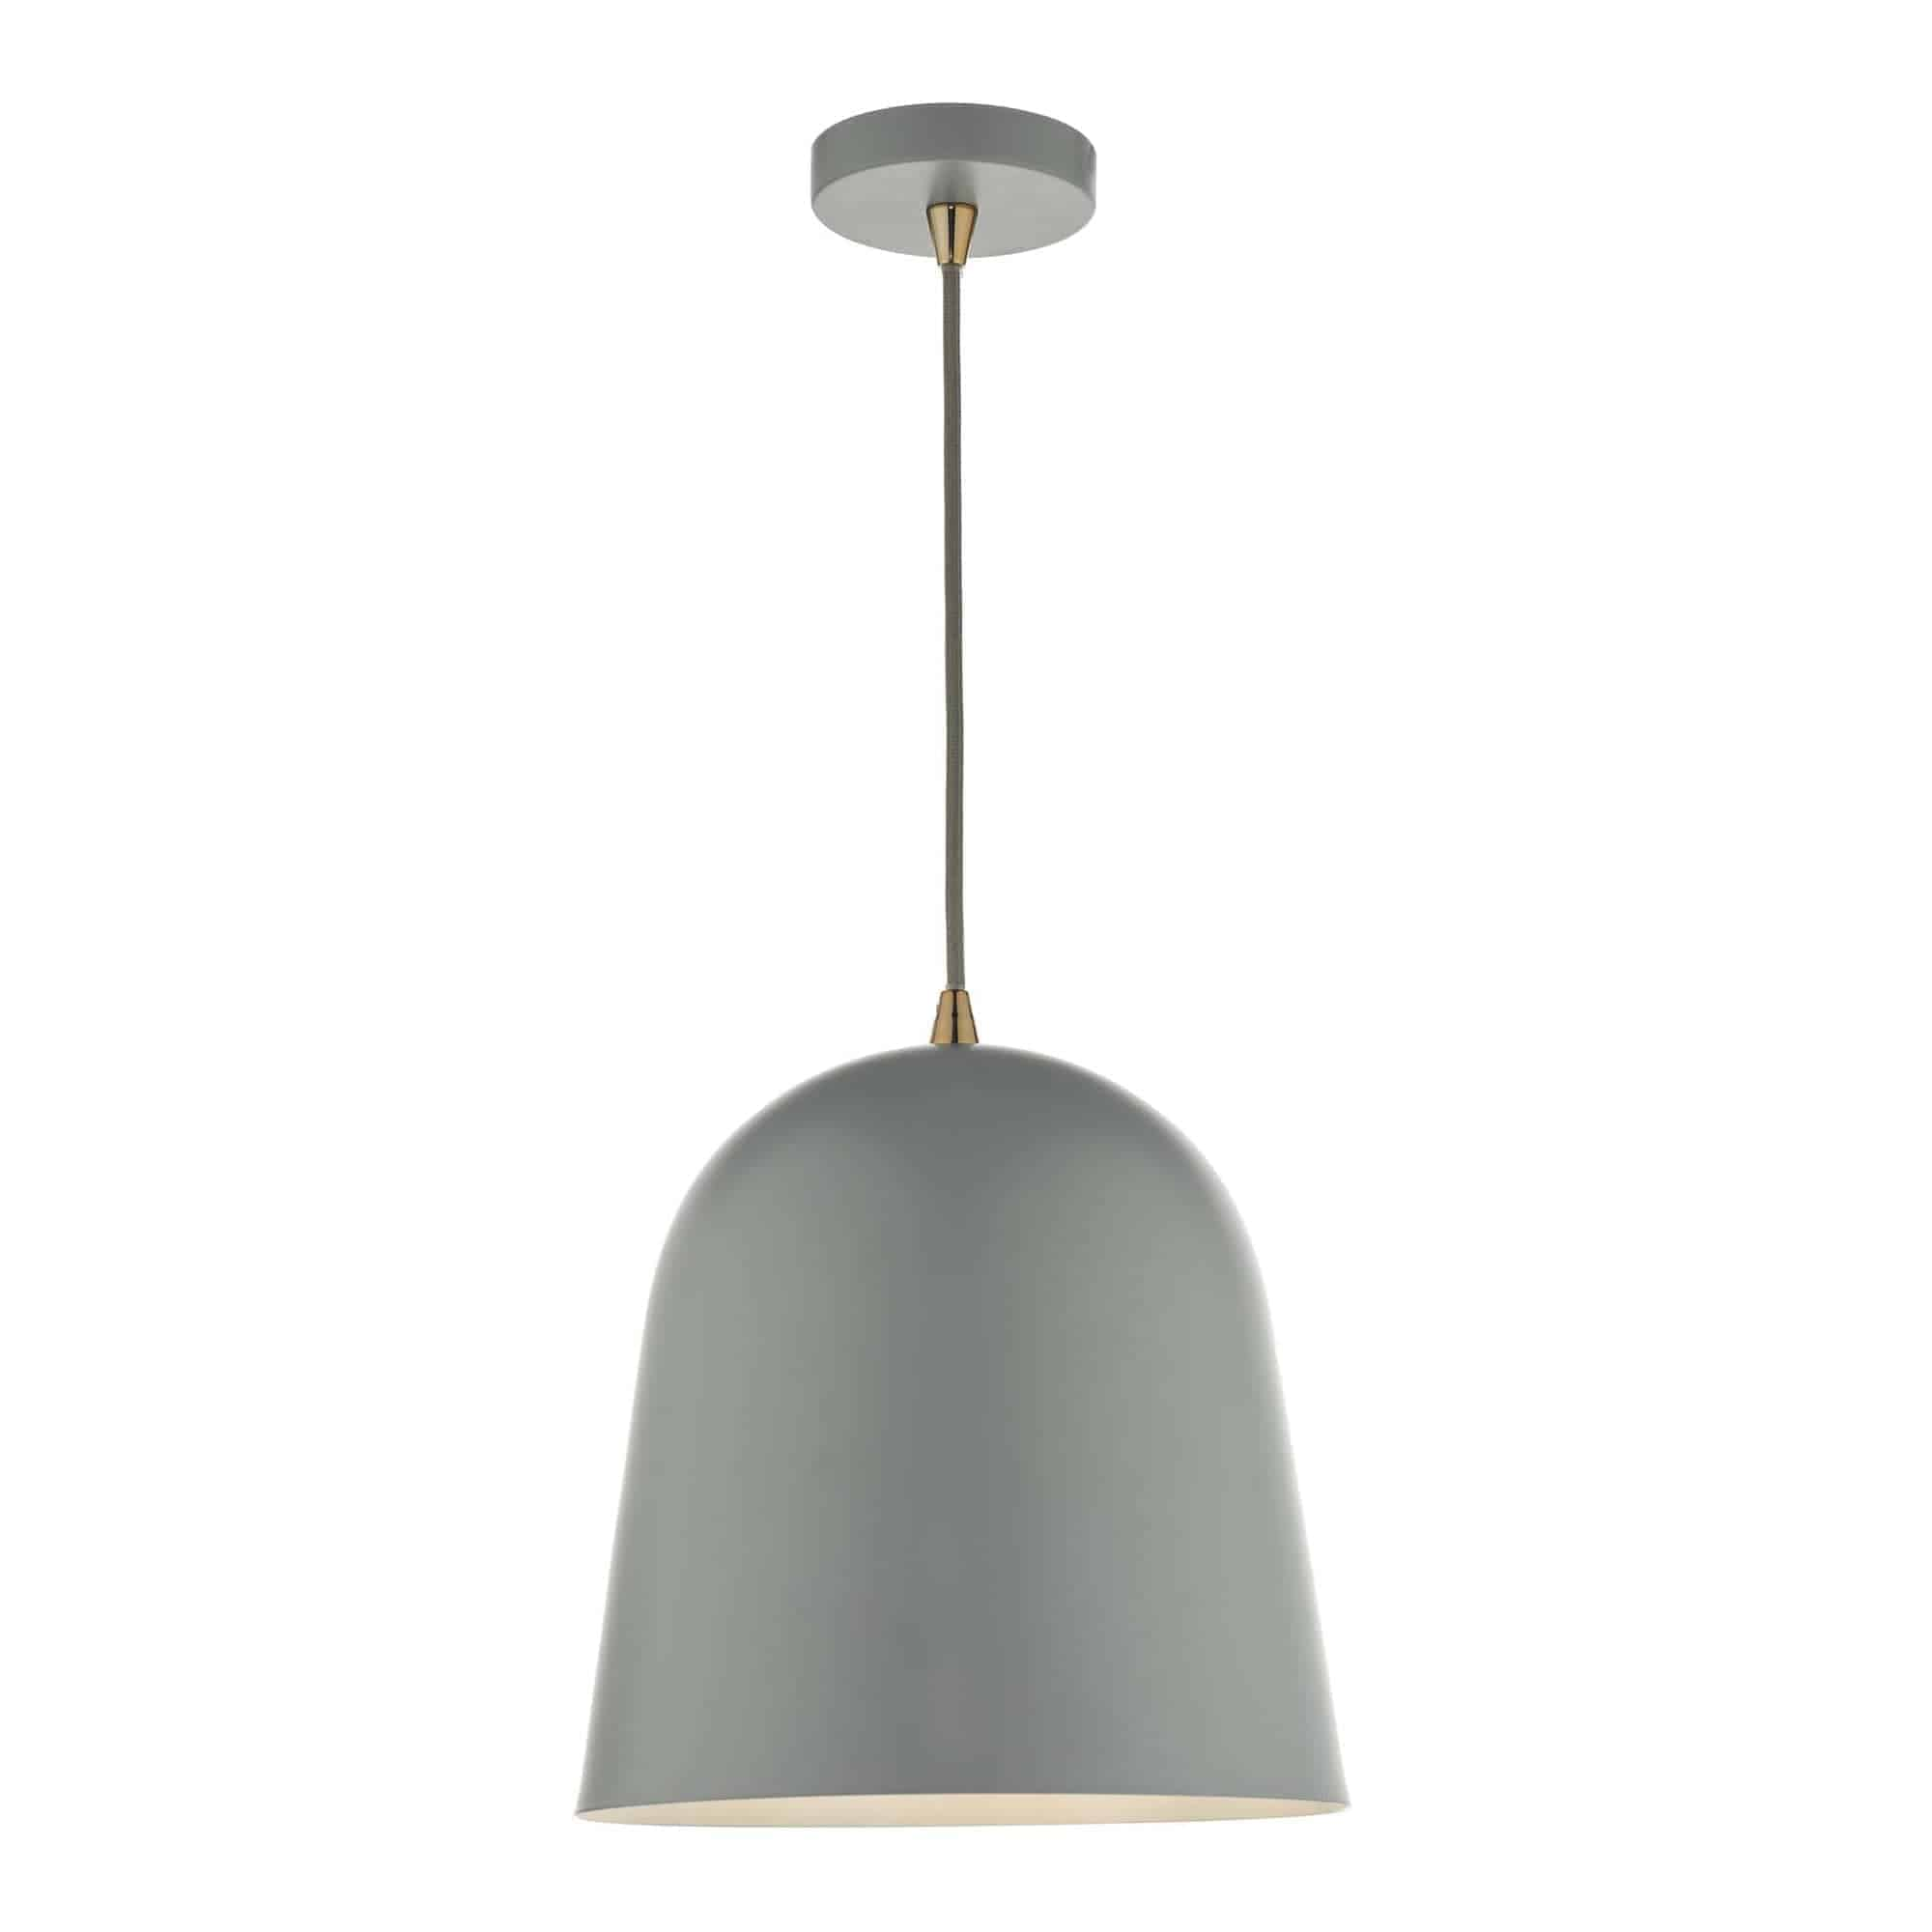 Dar BAJ0139 Baja 1 Light Pendant Small Grey